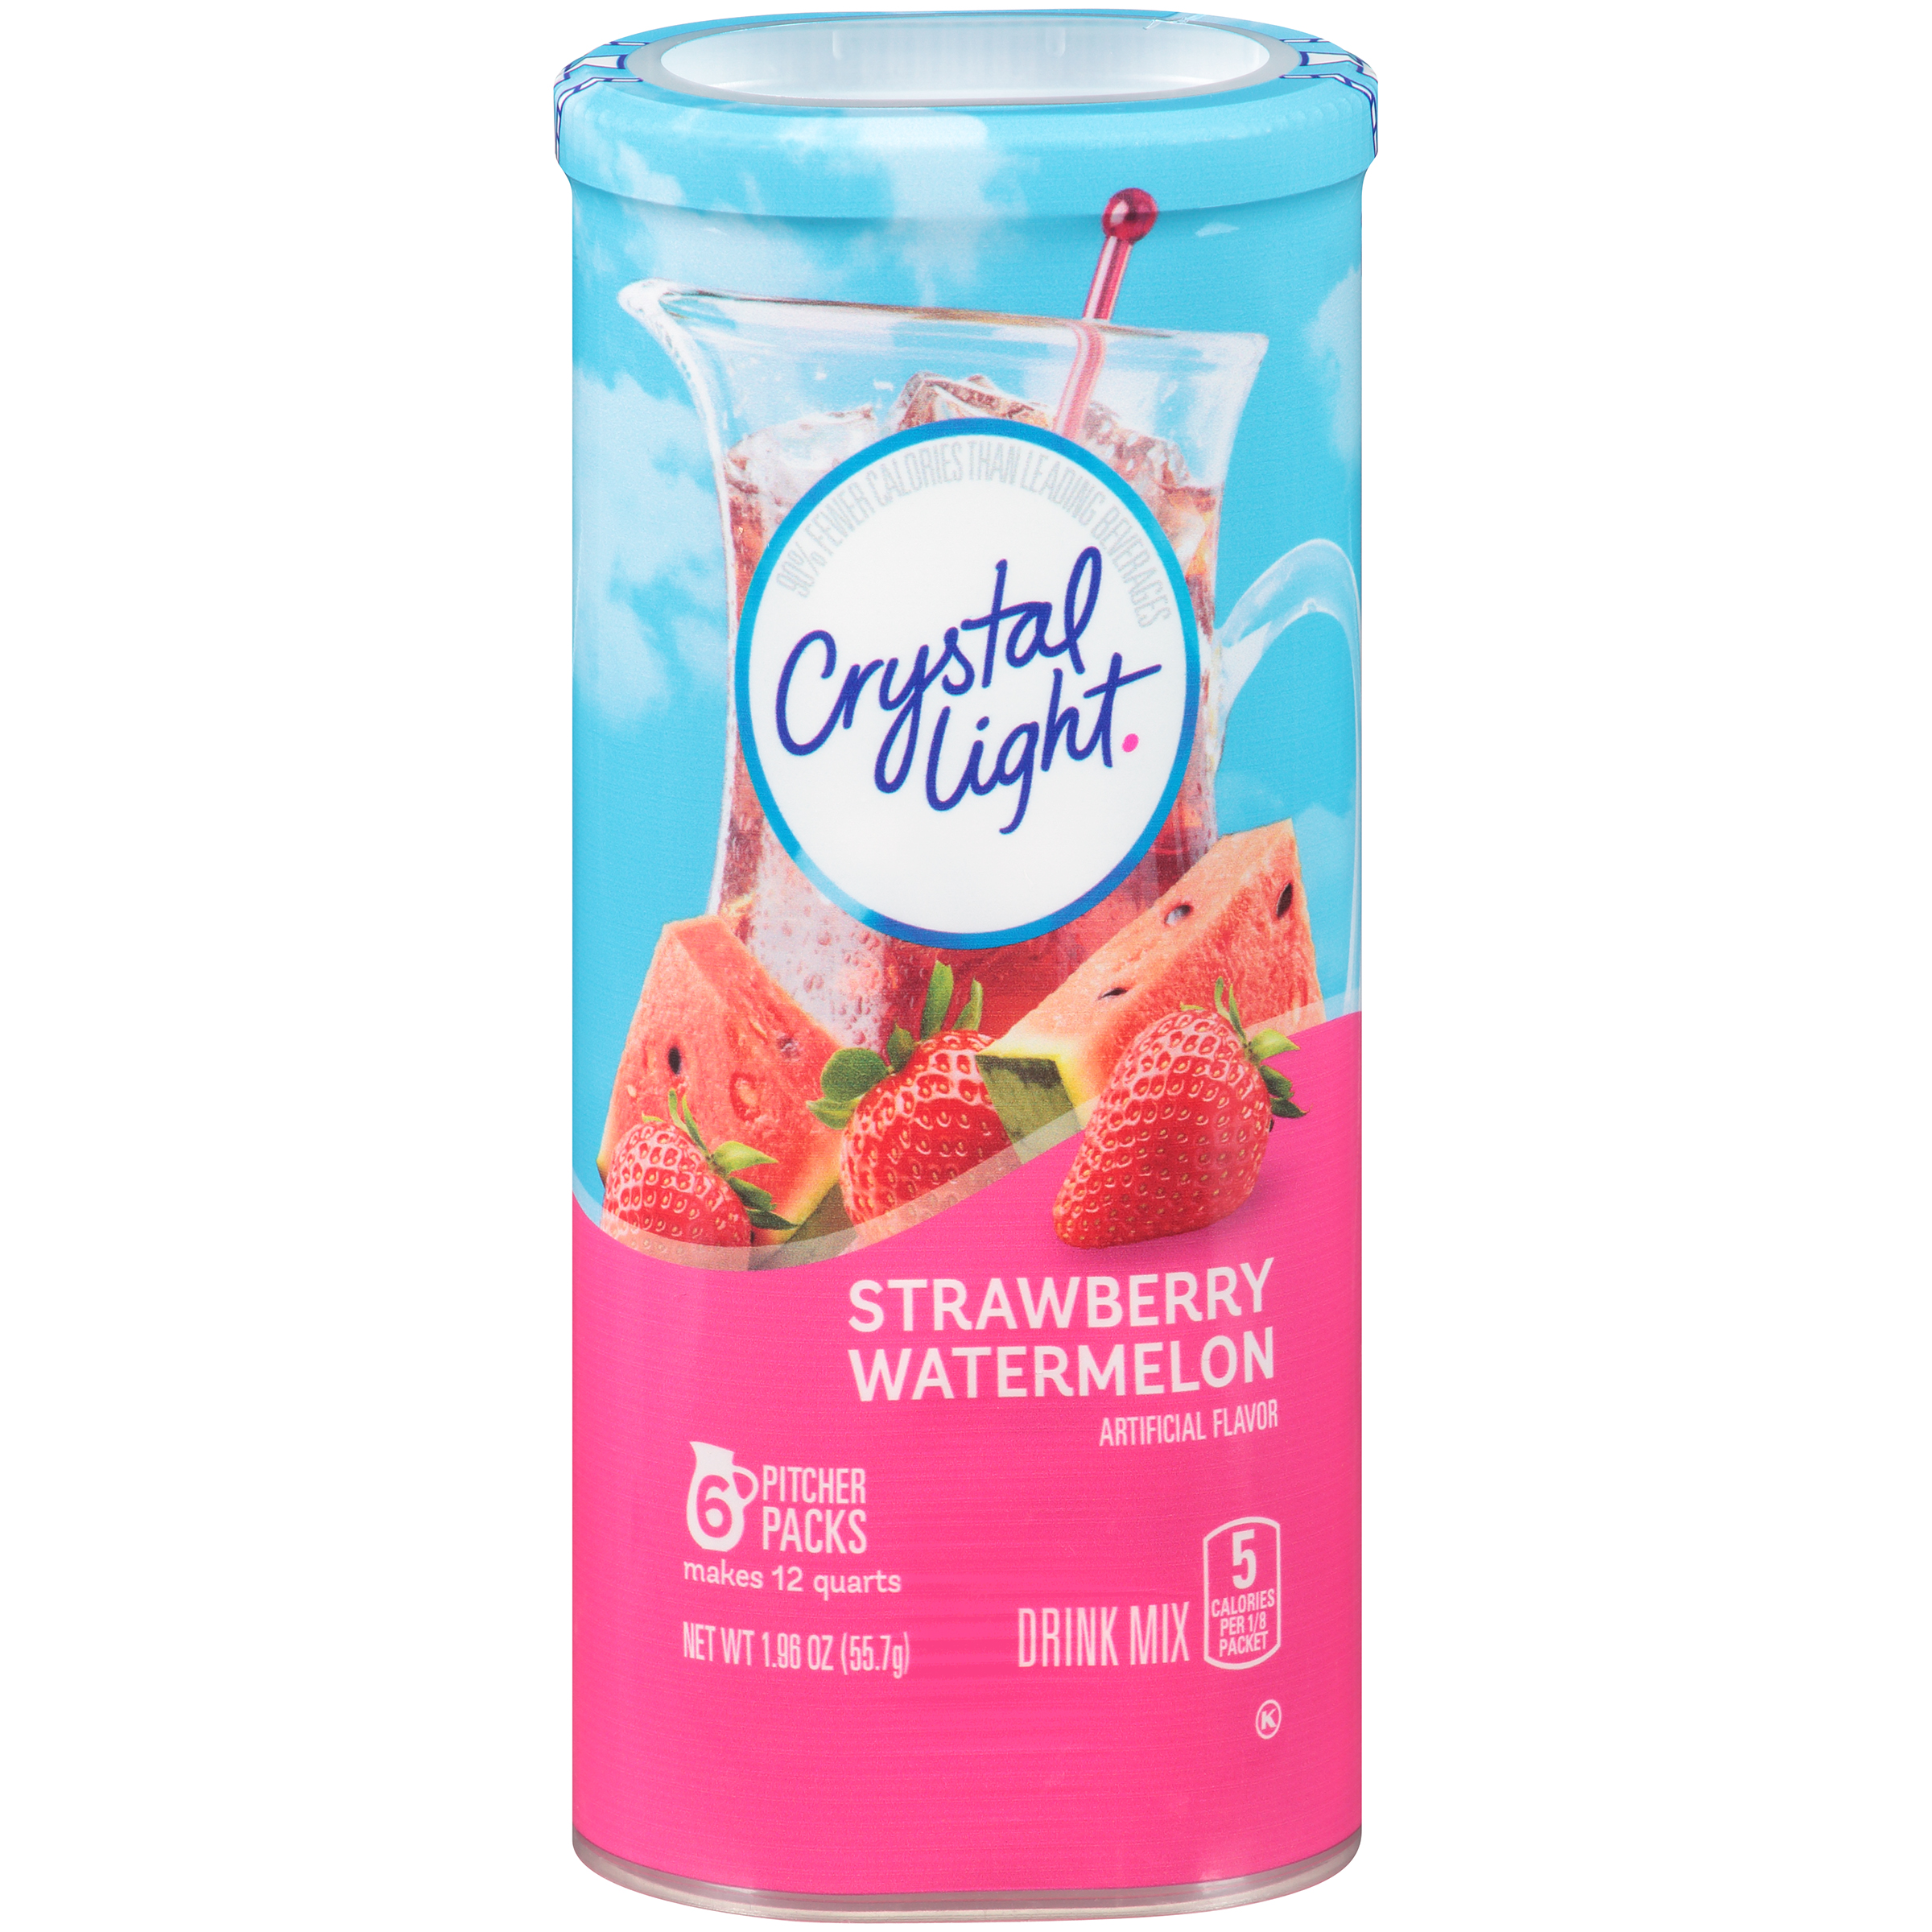 Crystal Light Strawberry Watermelon Drink Mix Pitcher Packets, 6 count Box